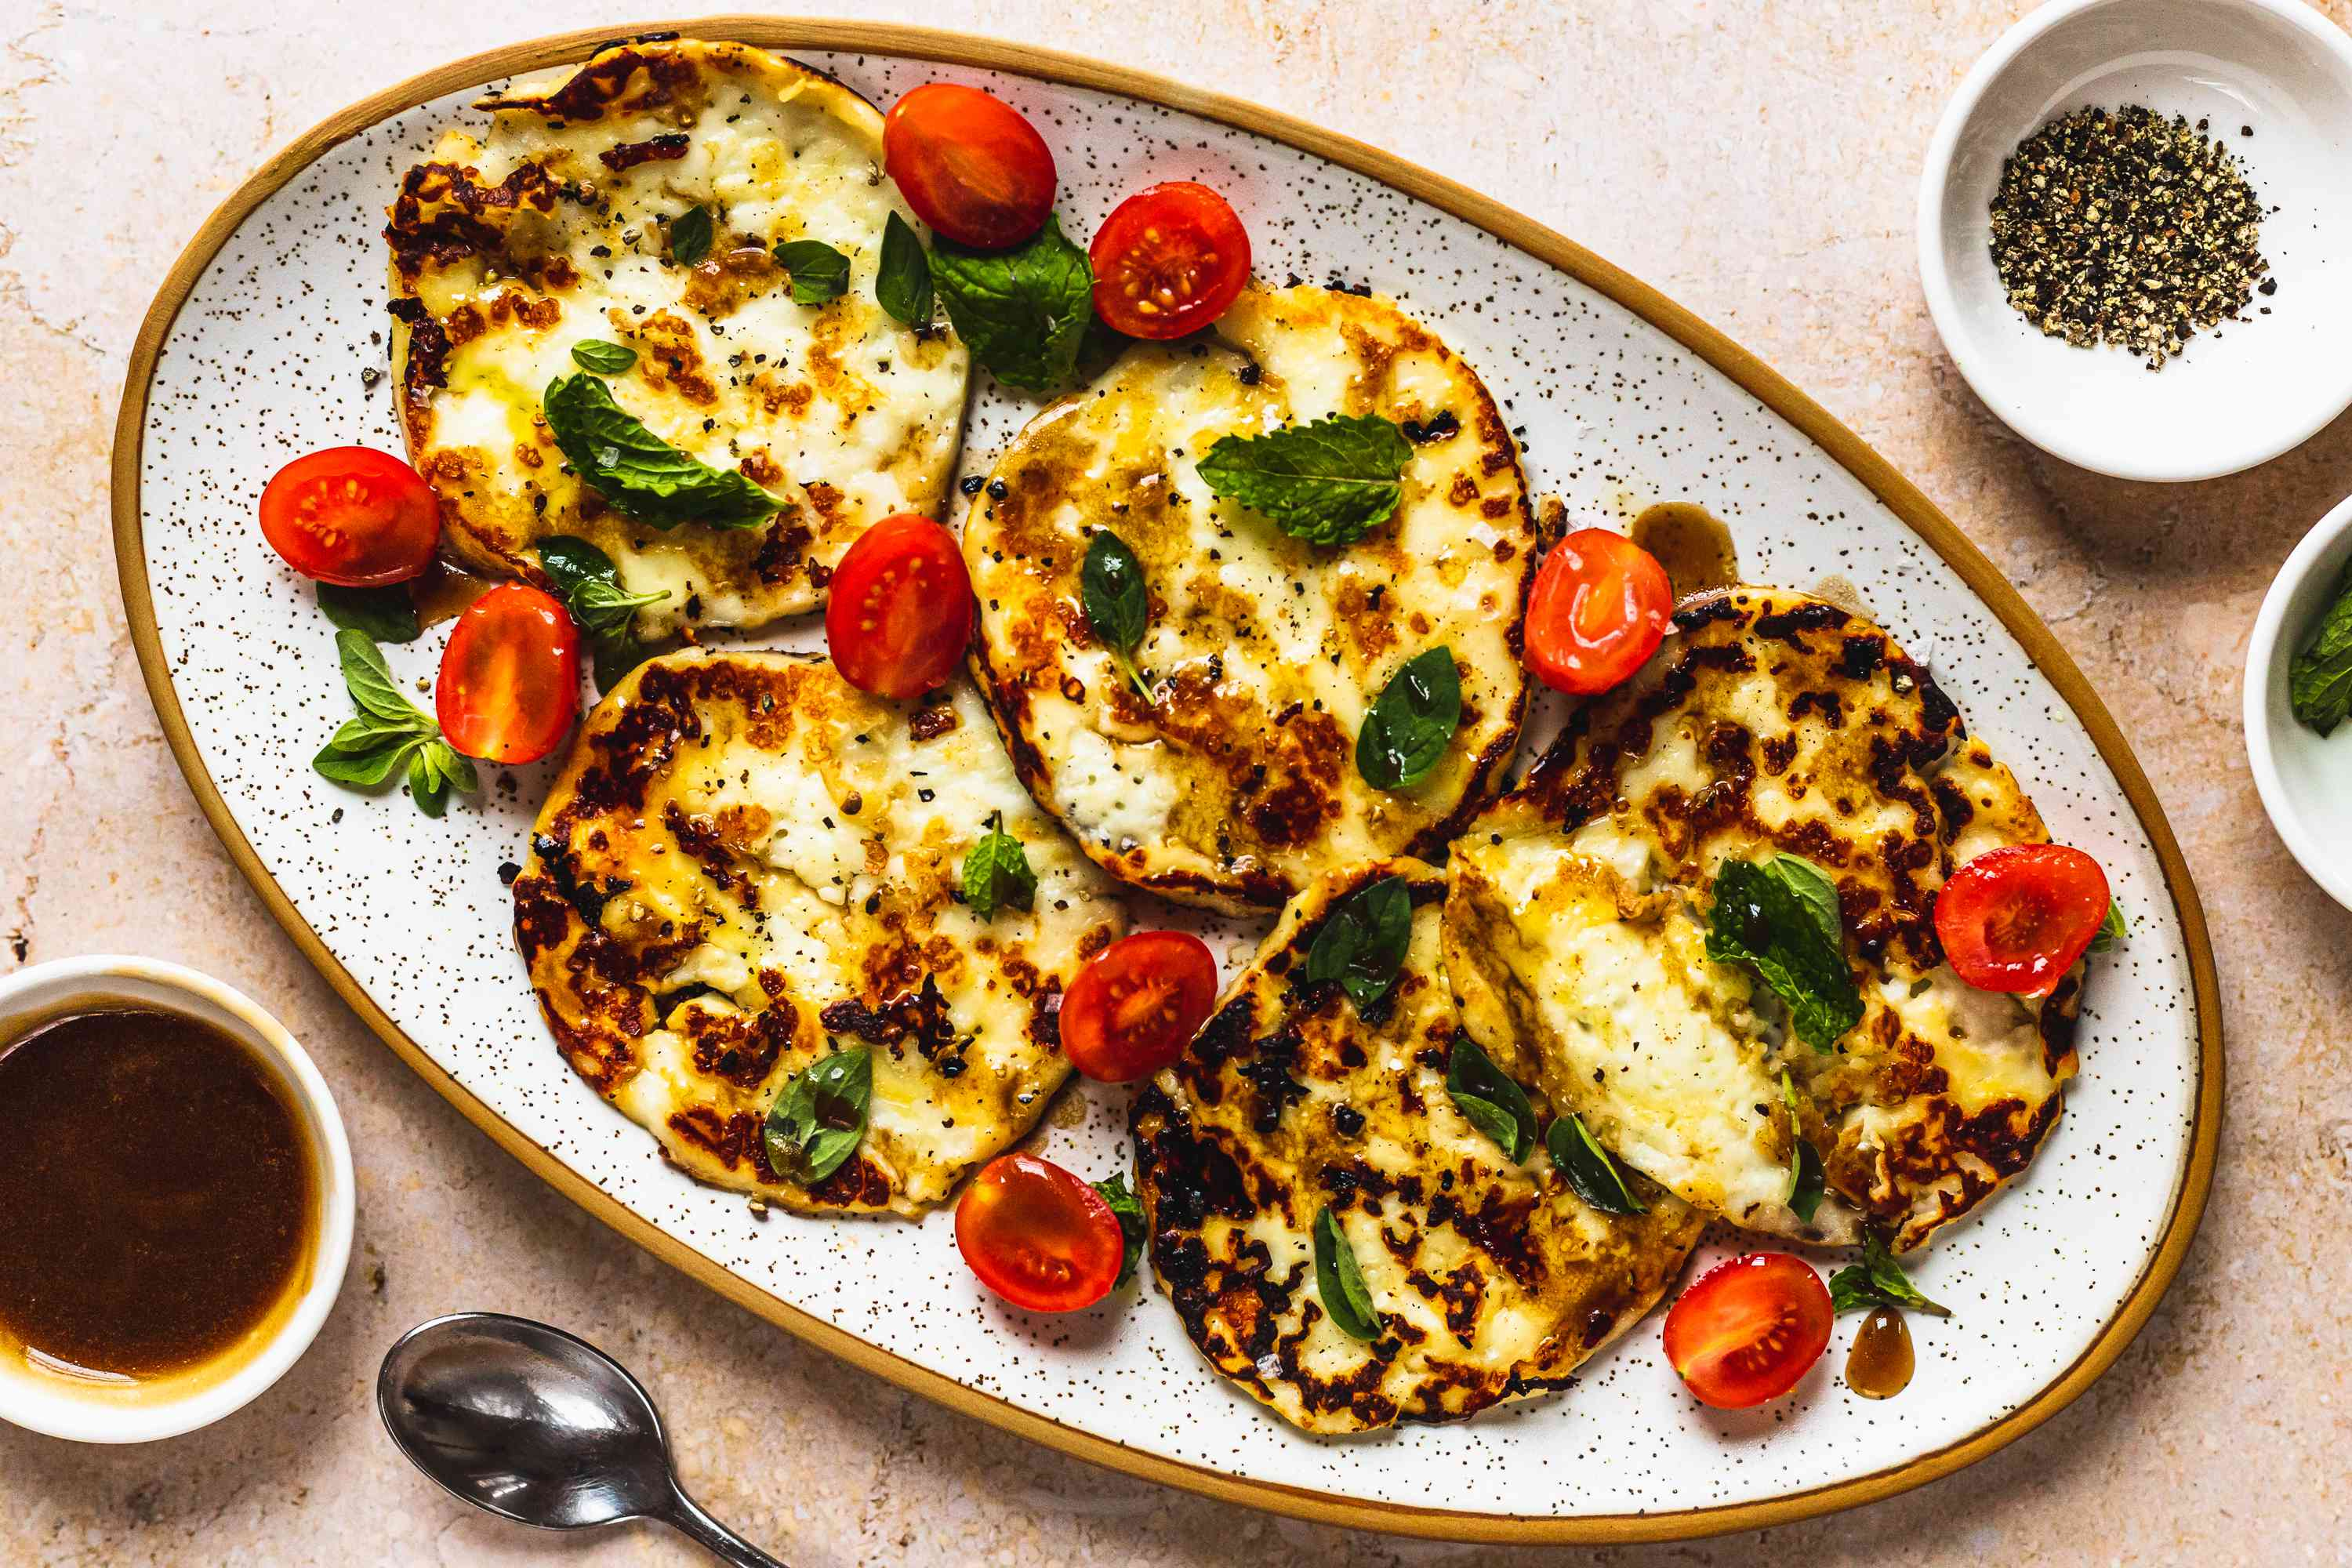 3-Minute Fried Halloumi Cheese Meze, Fried halloumi cheese slice on plate with tomatoes